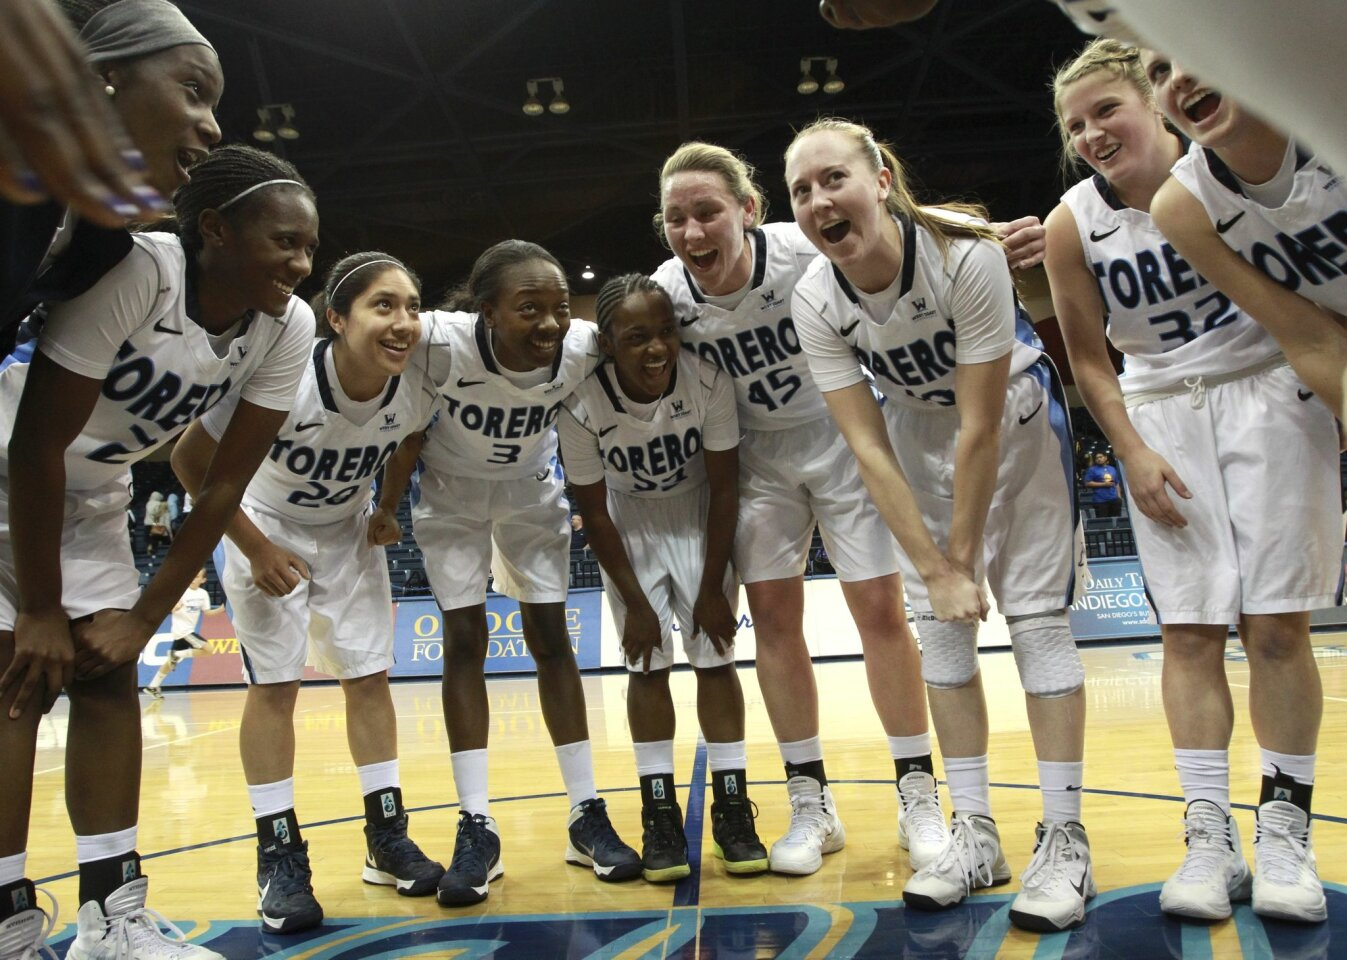 USD players celebrate after defeating Pepperdine 71-43 at the Jenny Craig Pavilion in San Diego on December 28, 2013. The Toreros remain undefeated at 12-0.